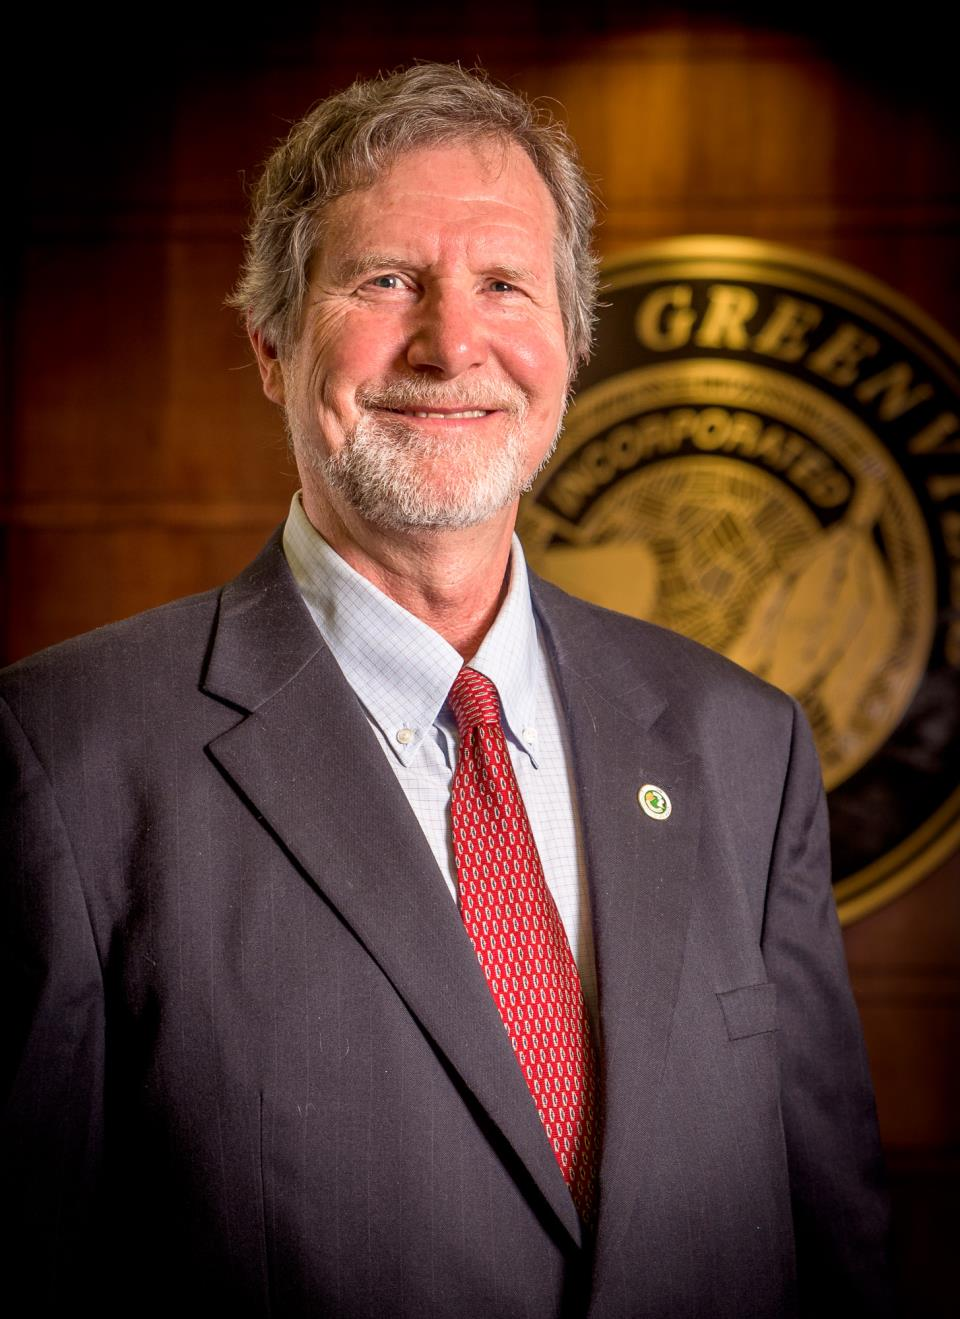 City manager government card - Council Member At Large Calvin R Mercer 200 West Fifth Street Greenville Nc 27835 Telephone 252 551 9189